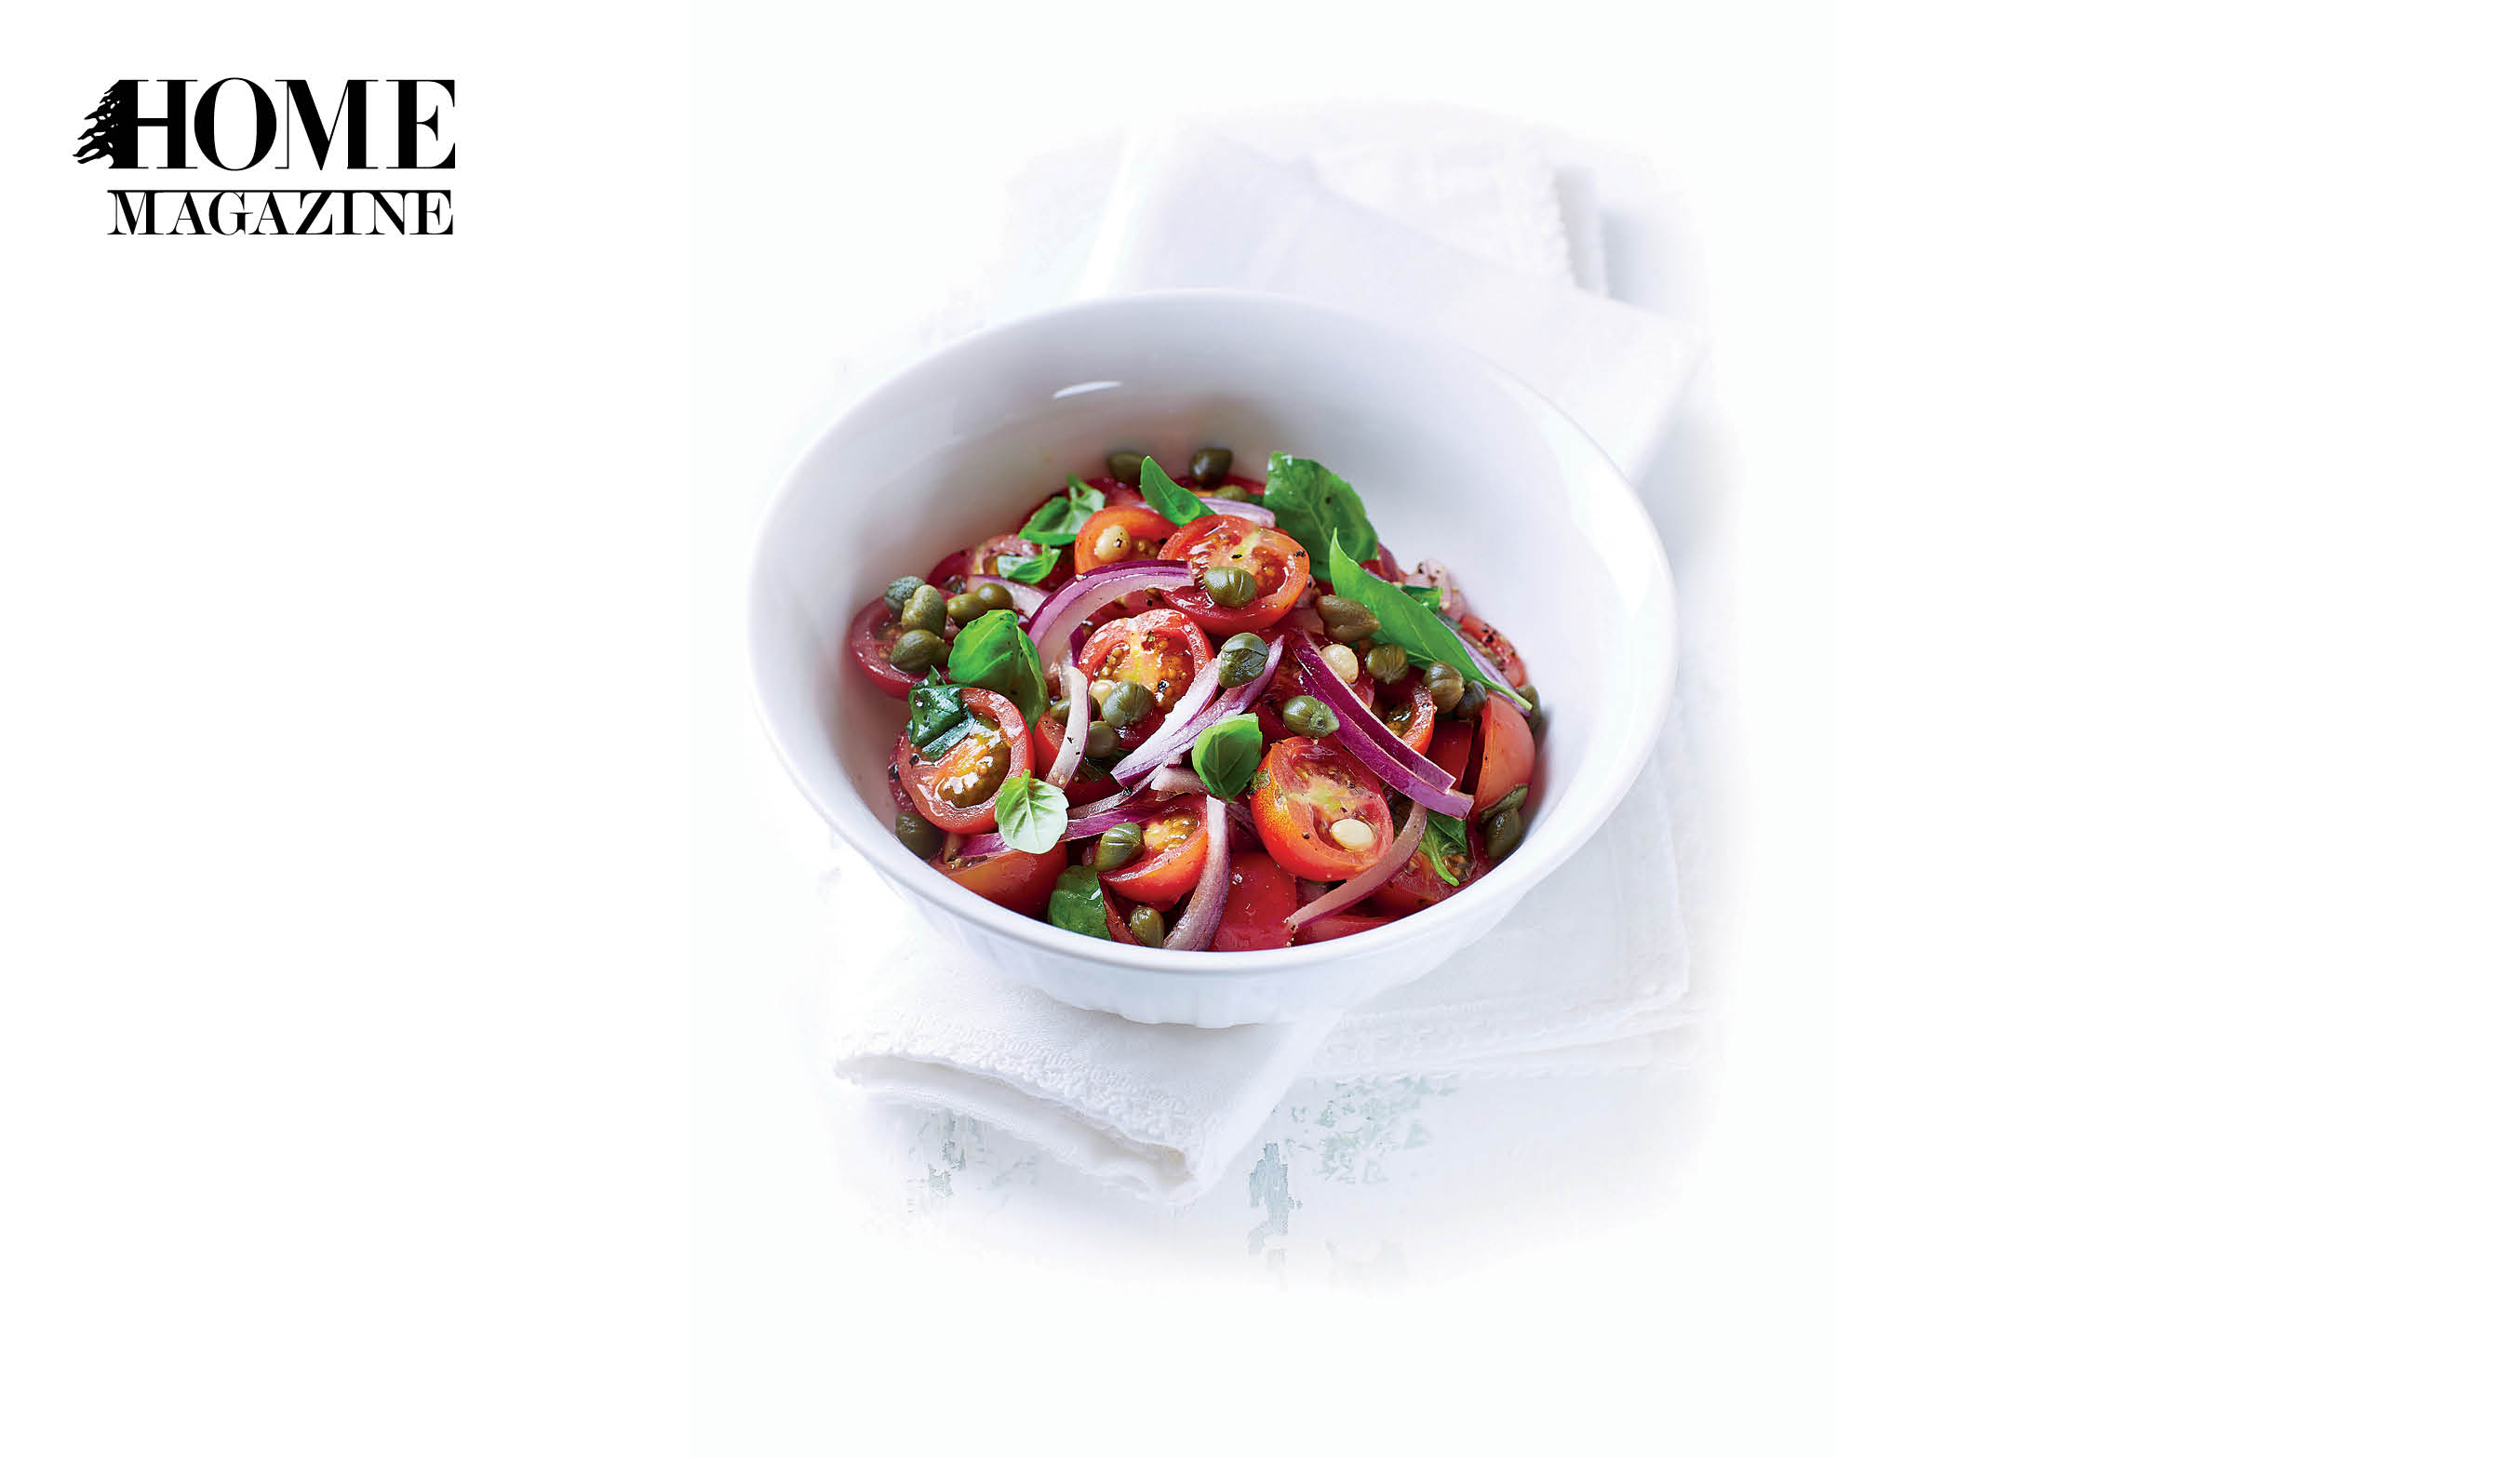 Tomato, Onion and Basil in a white bowl